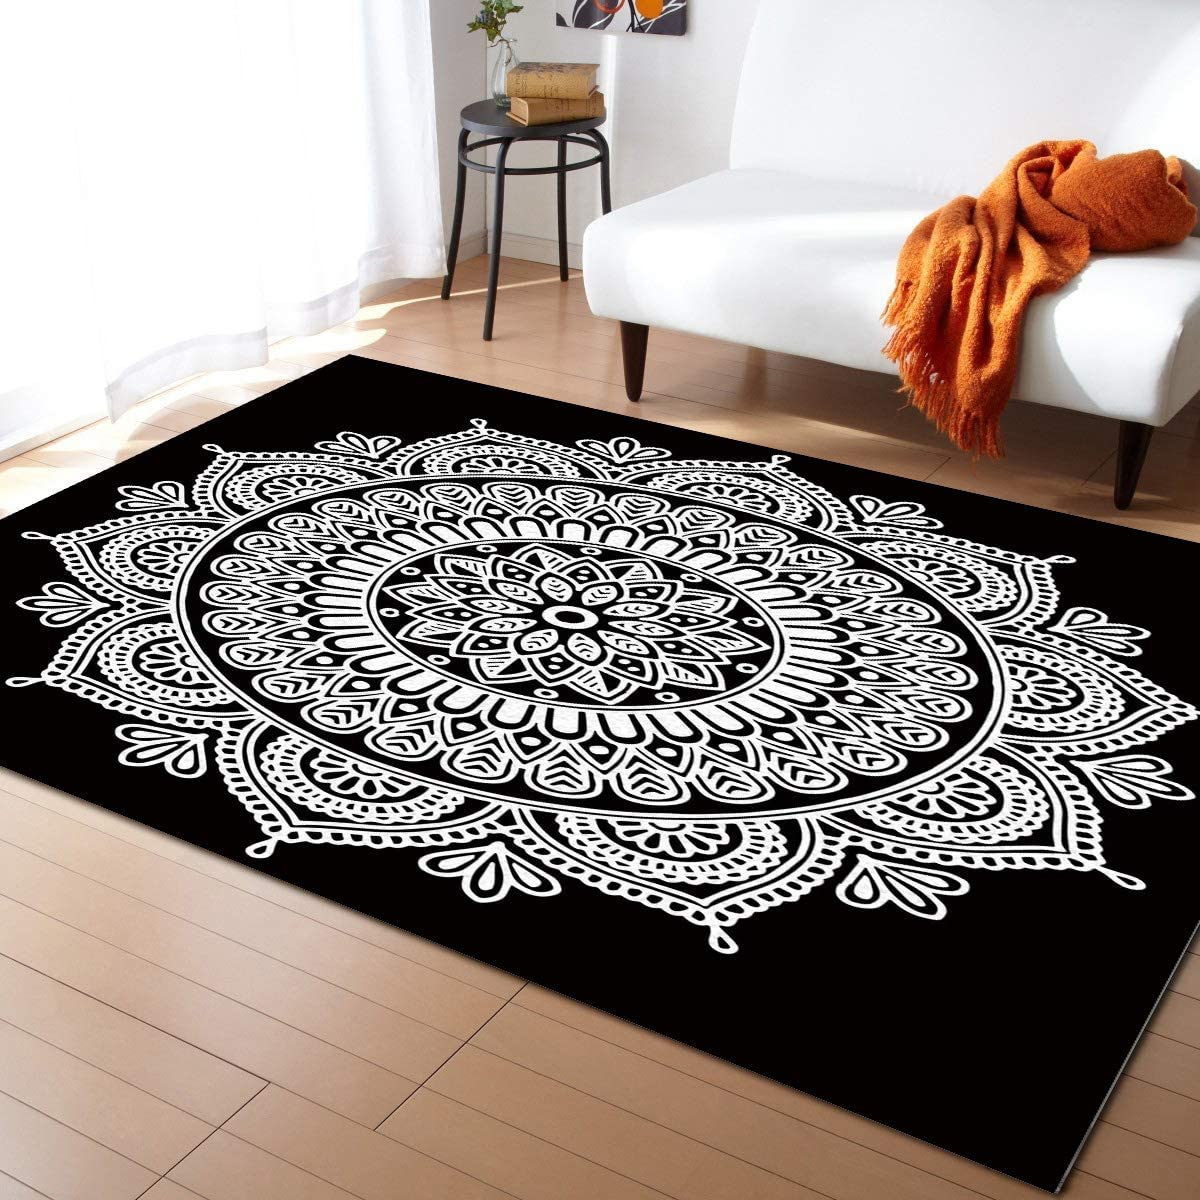 Olivefox 4x6 Feet Floor Mat Area B on White Mandala Department Safety and trust store Rug Pattern